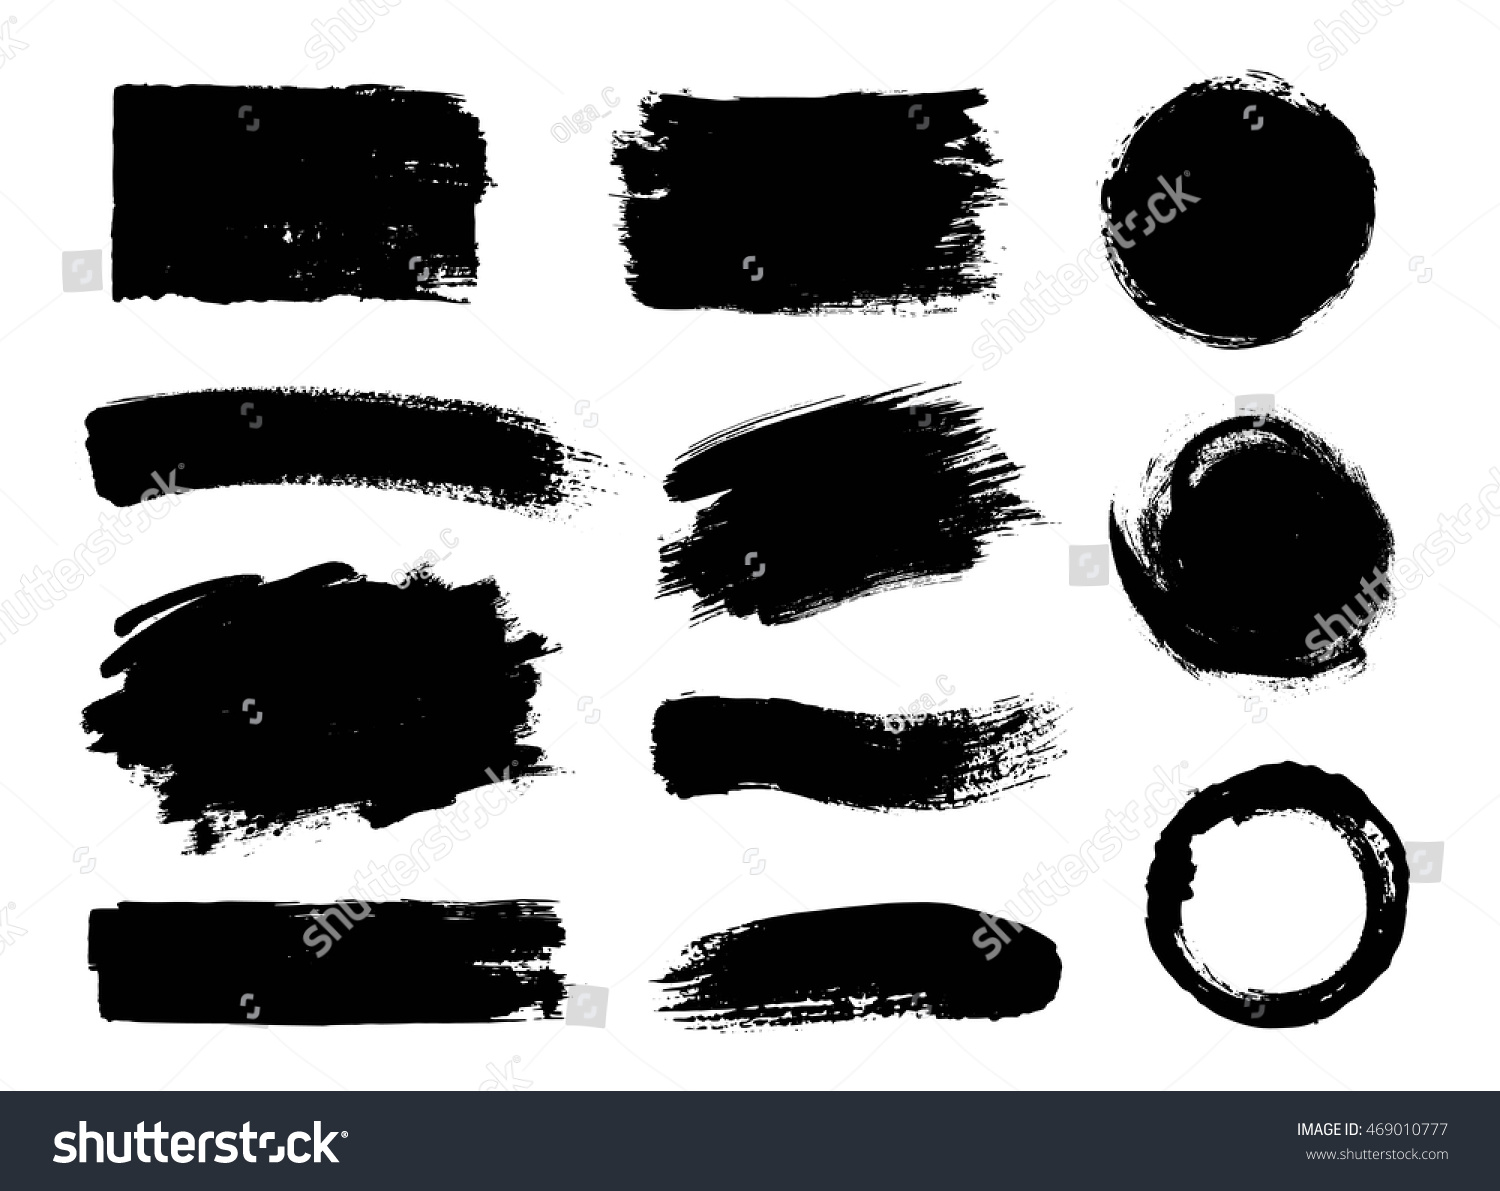 Vector set of grunge artistic brush strokes, design elements. Empty black backgrounds, frames for text or quote. #469010777